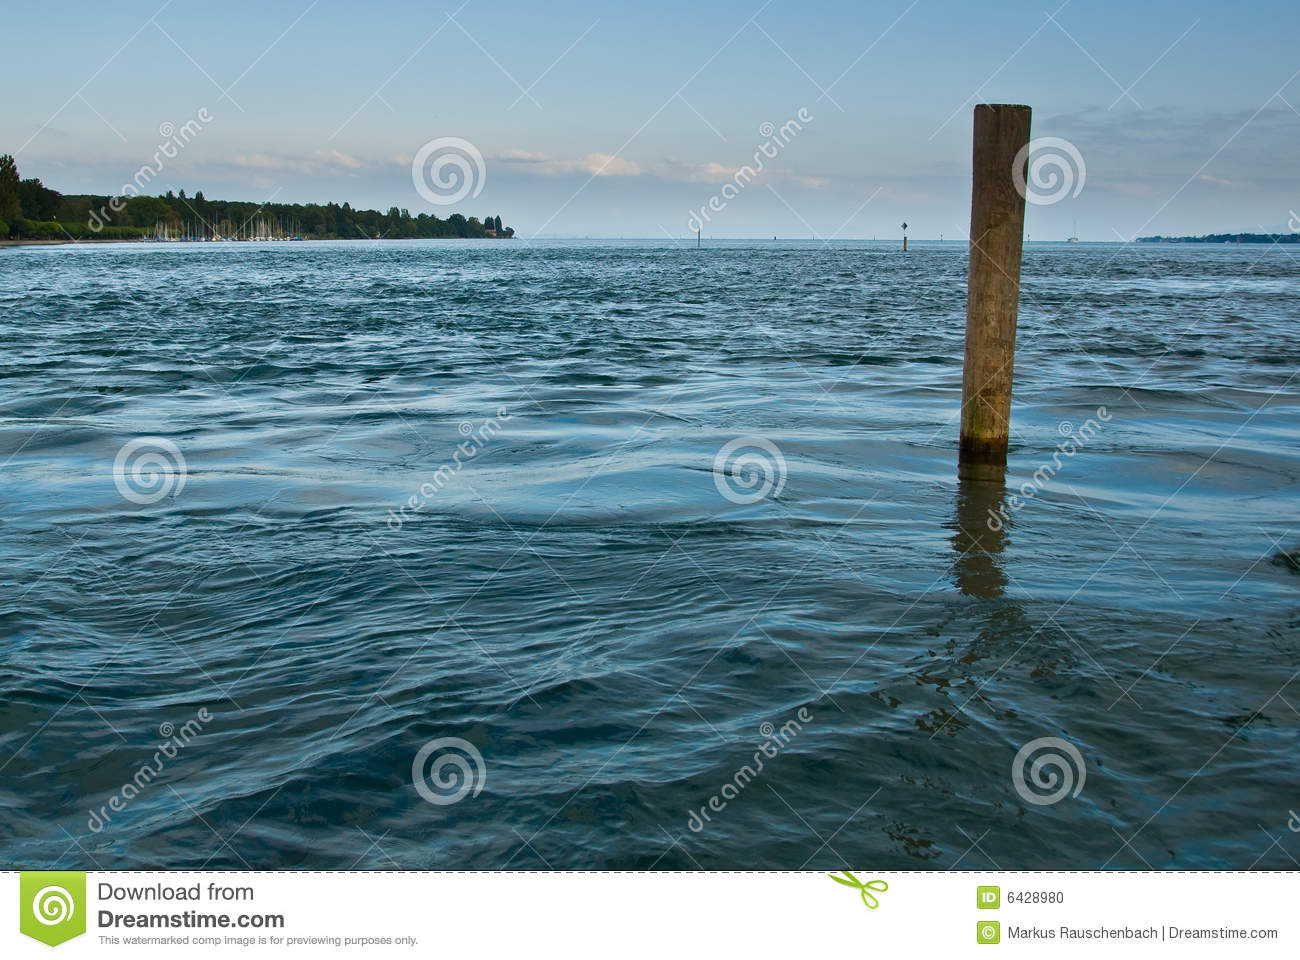 Constance Germany  City pictures : Lake Constance Germany Stock Photo Image: 6428980